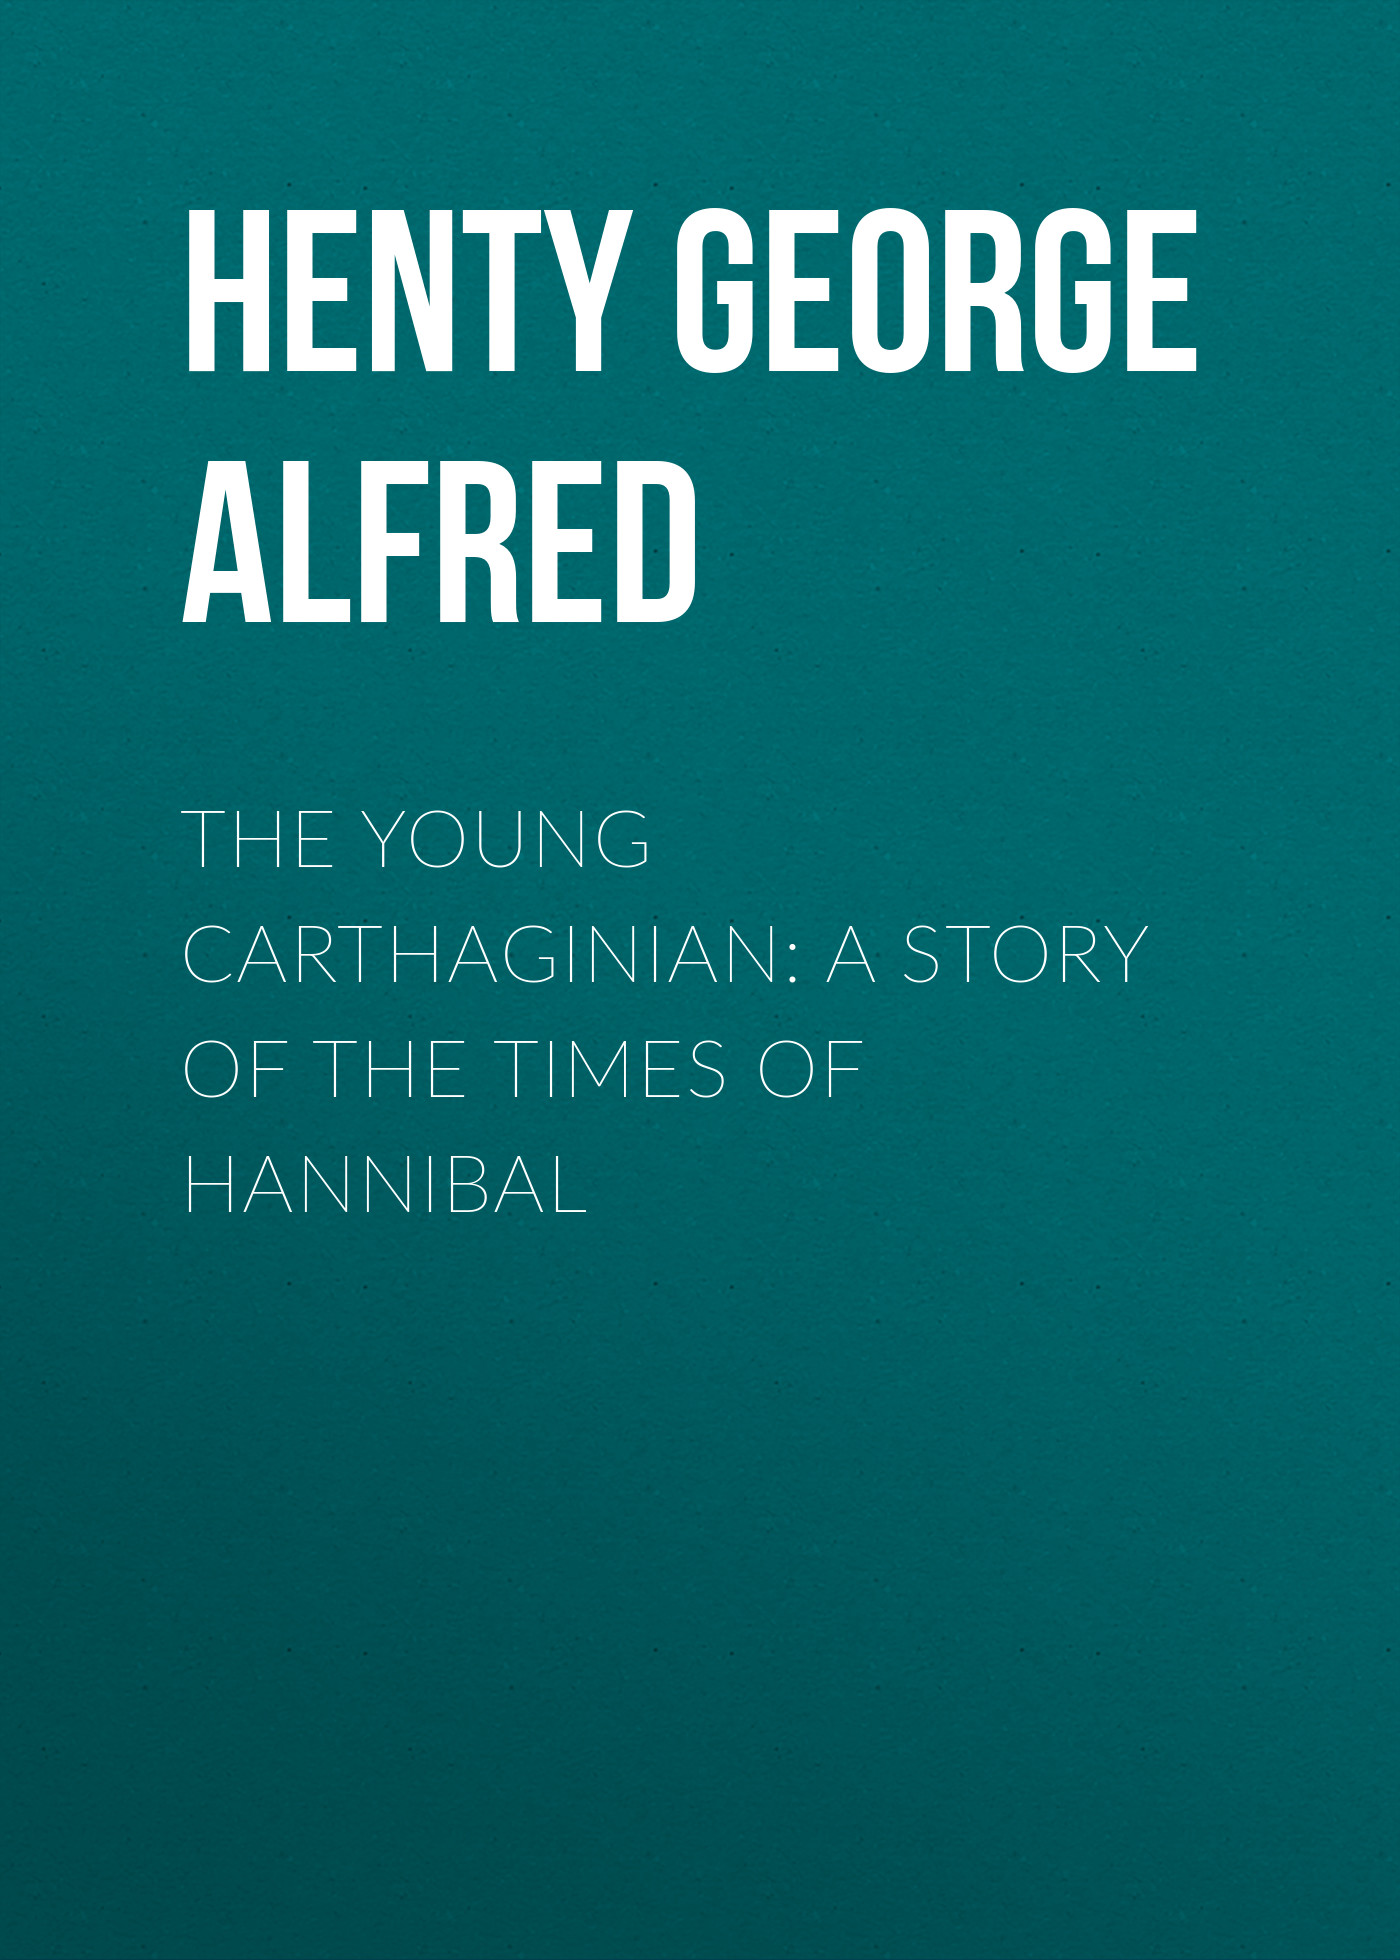 Henty George Alfred The Young Carthaginian: A Story of The Times of Hannibal george alfred henty with lee in virginia a story of the american civil war